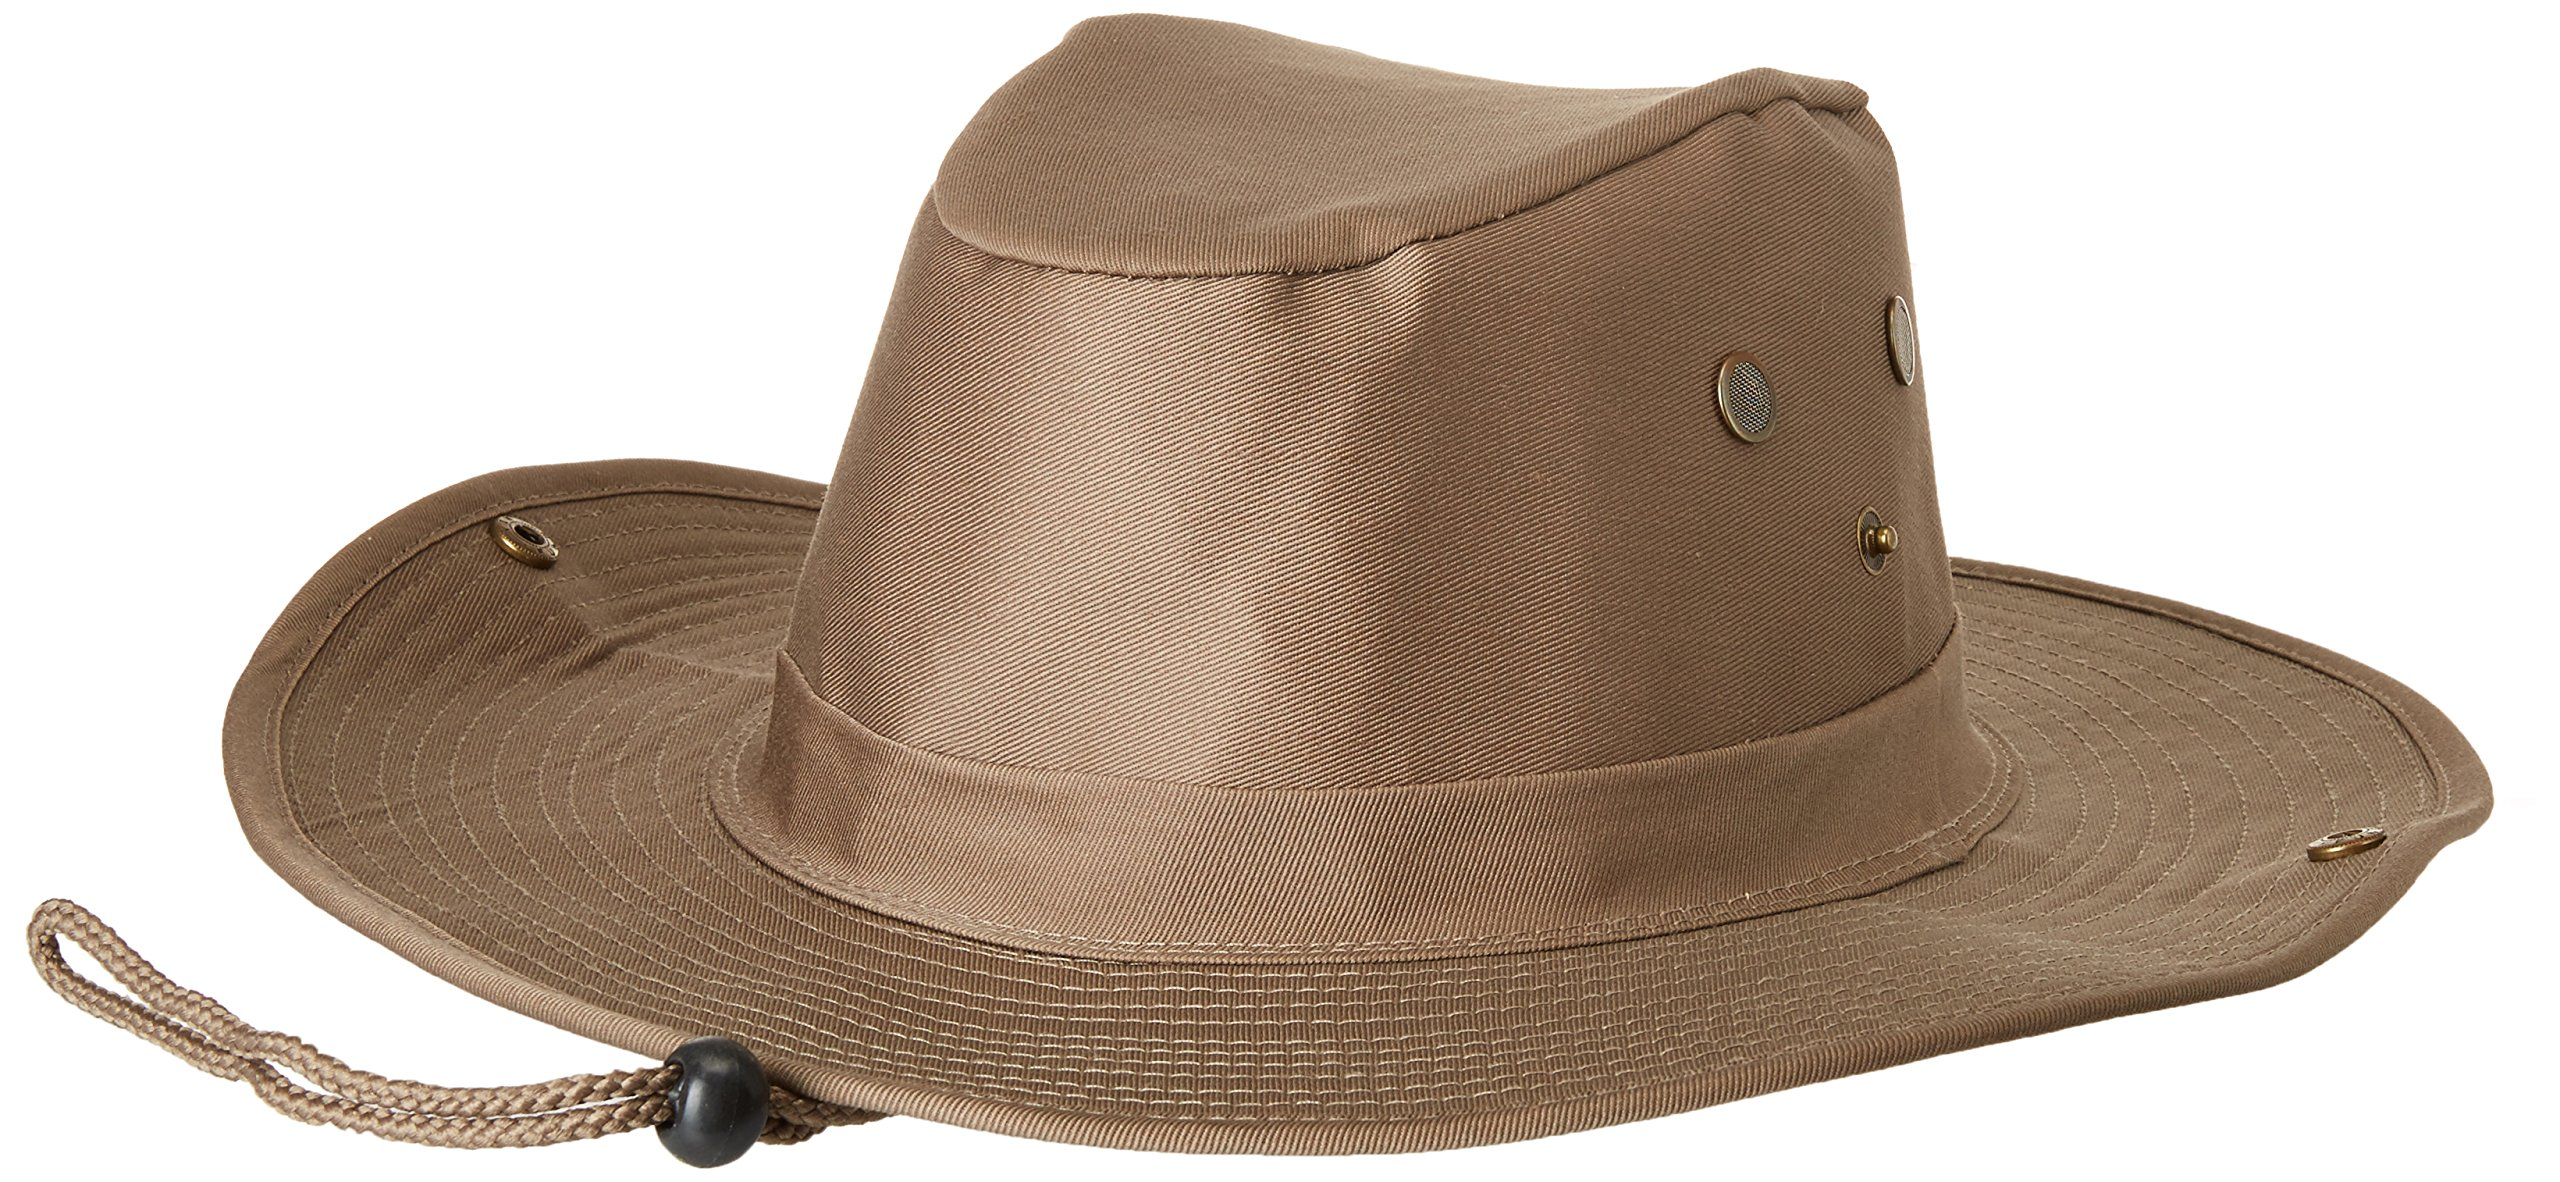 Boonie Bush Outdoor Fishing Hiking Hunting Boating Snap Brim Hat Sun Cap  Bucket 79af9e5c01e1